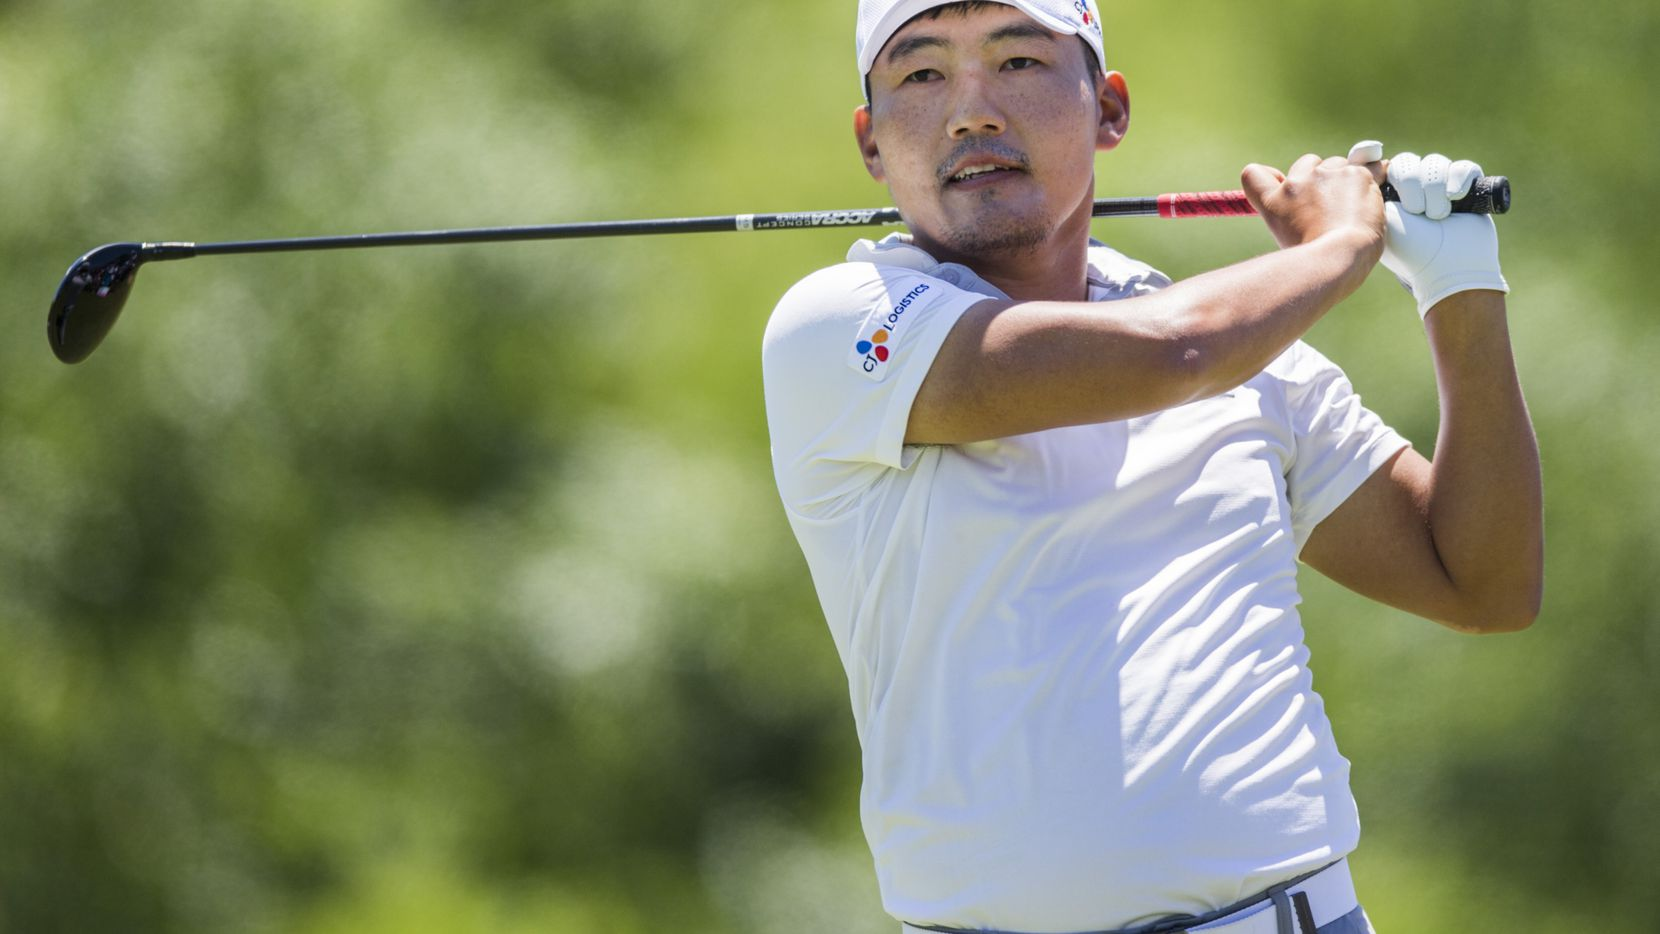 Sung Kang, de Corea, ganó el  AT&T Byron Nelson golf tournament en el Trinity Forest Golf Club de Dallas. (Ashley Landis/The Dallas Morning News)